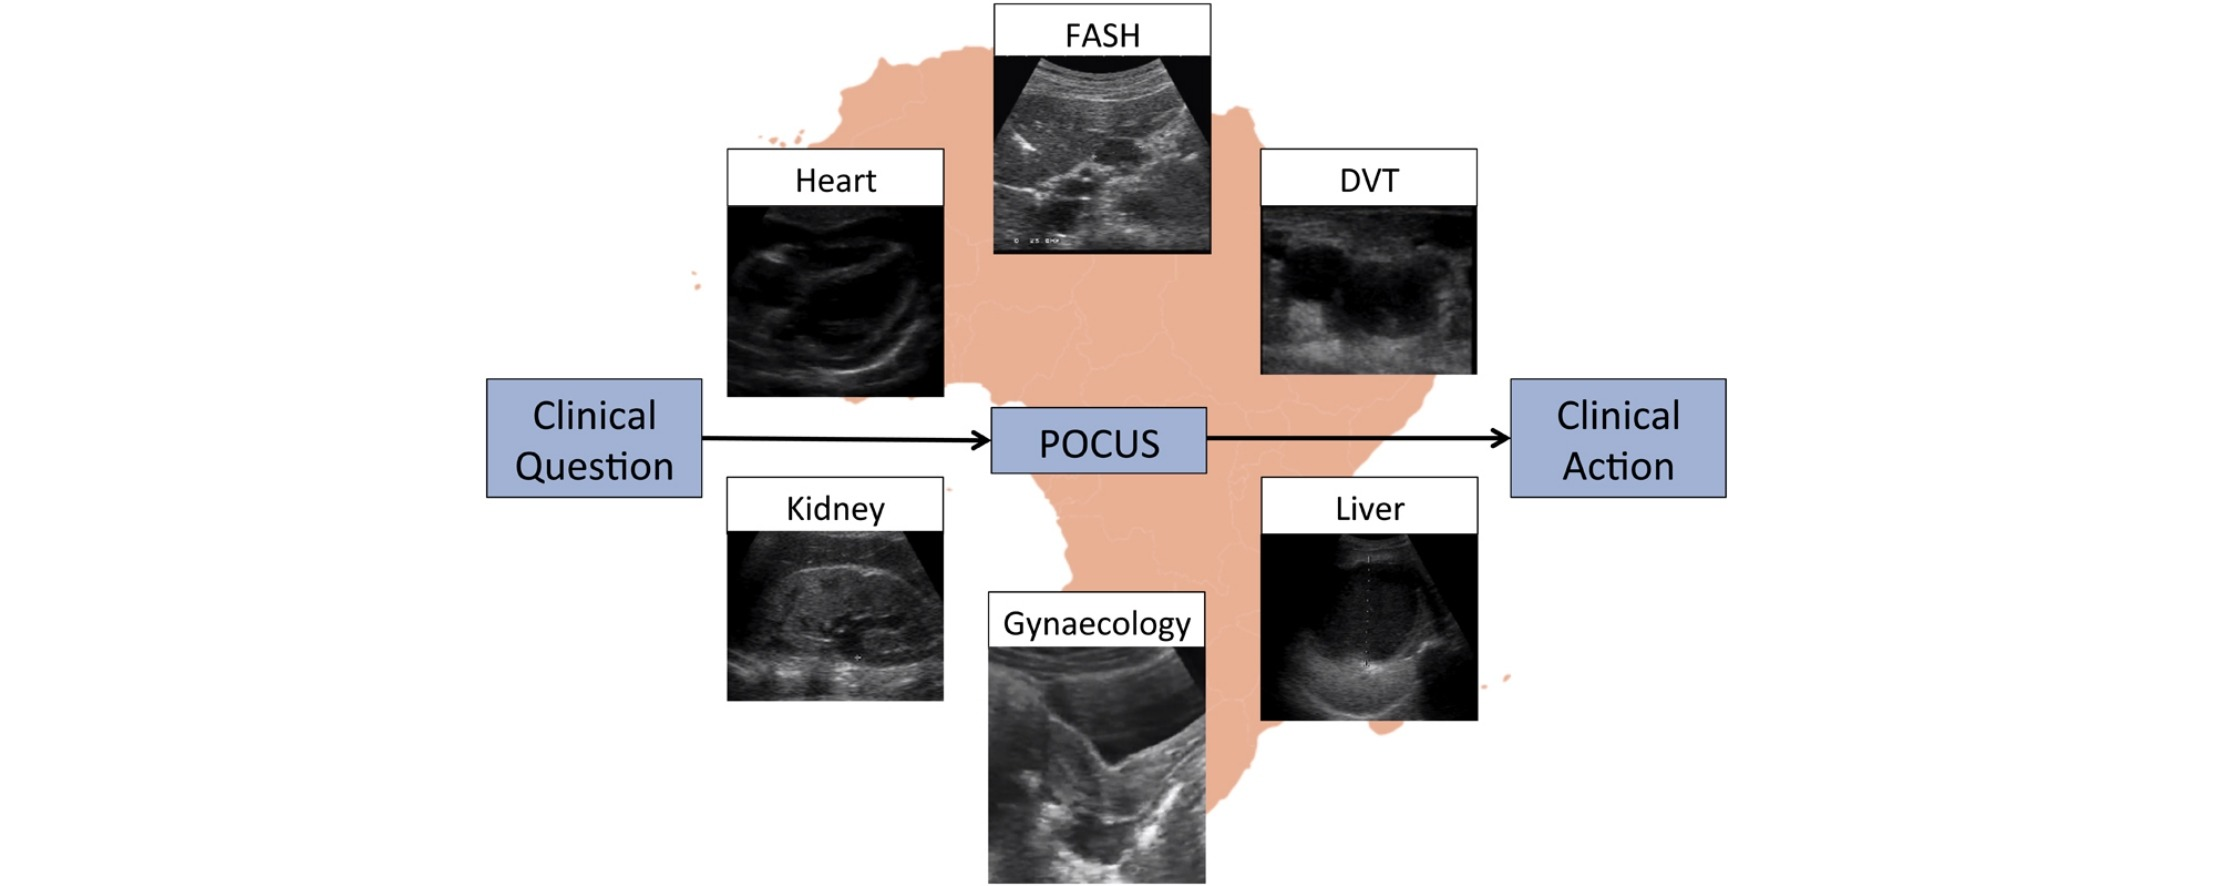 Ultrasound For Patients In A High Hiv Tuberculosis Prevalence Setting A Needs Assessment And